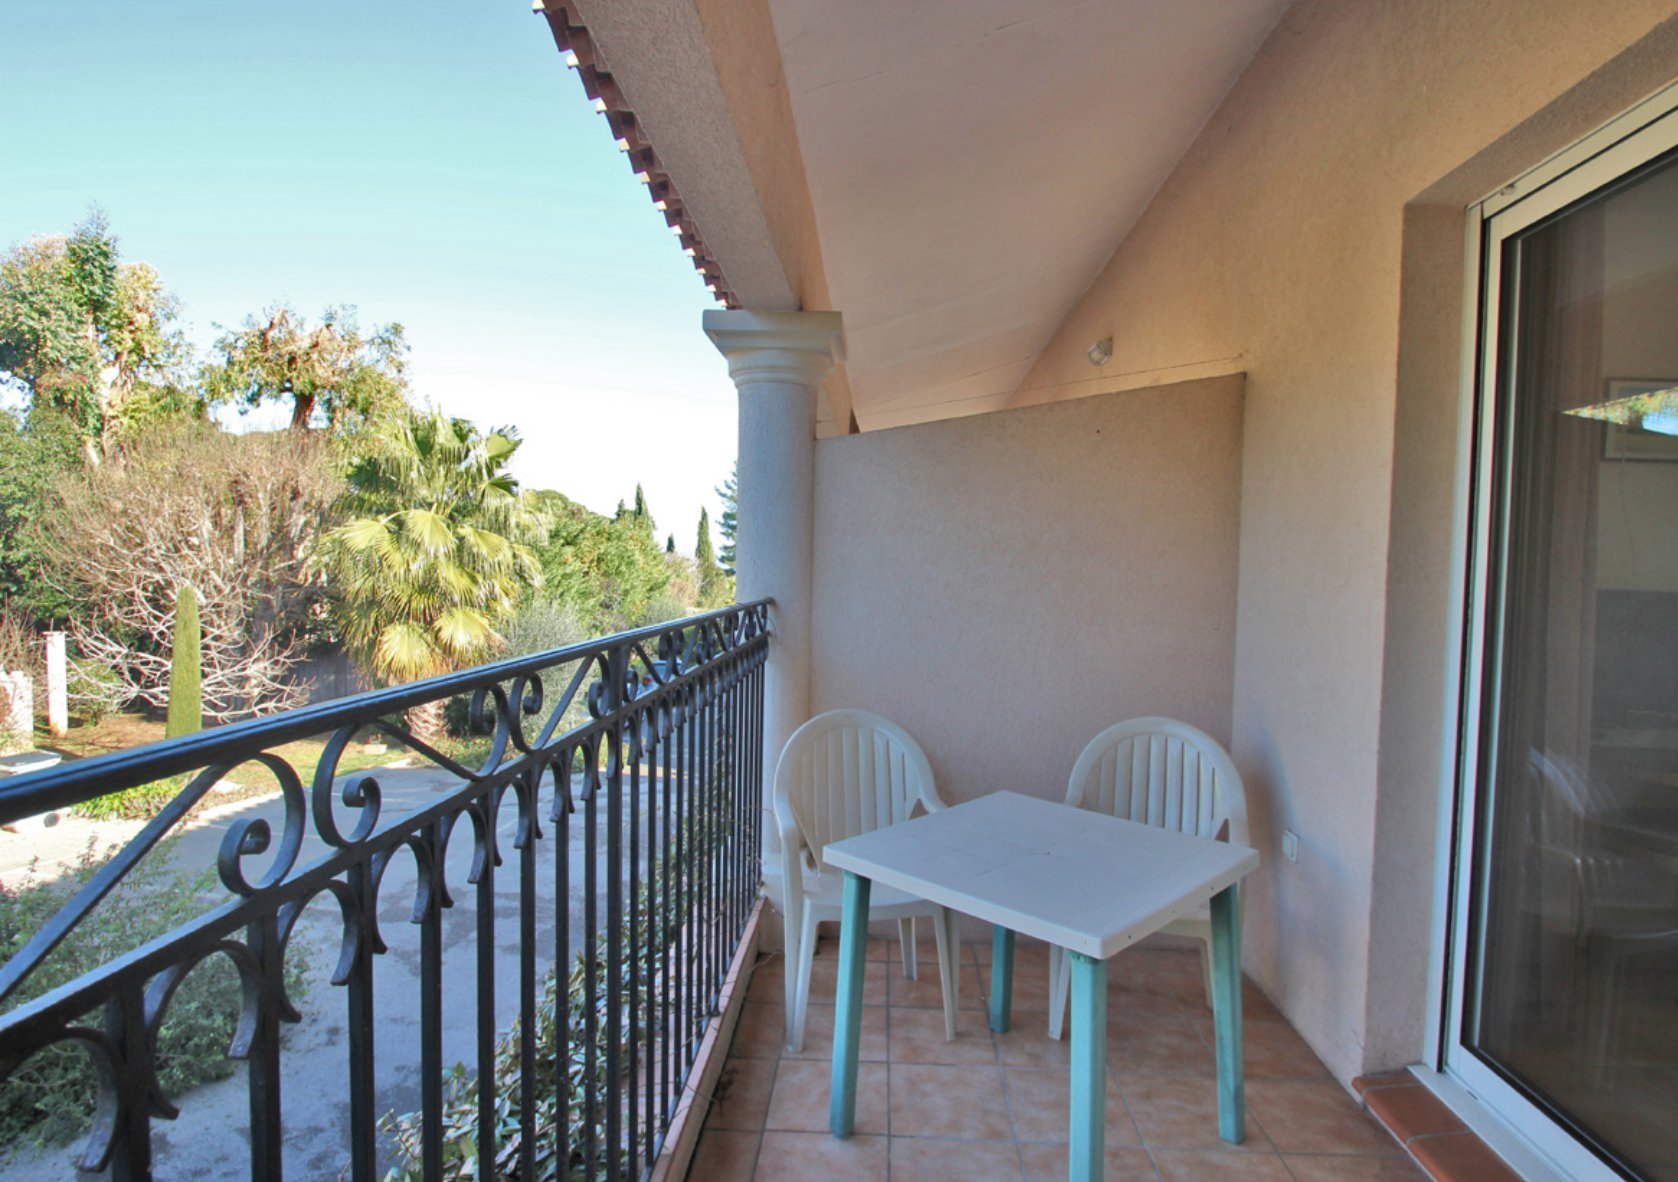 Cap d'Antibes - Studios, 1-bed apartments and villa